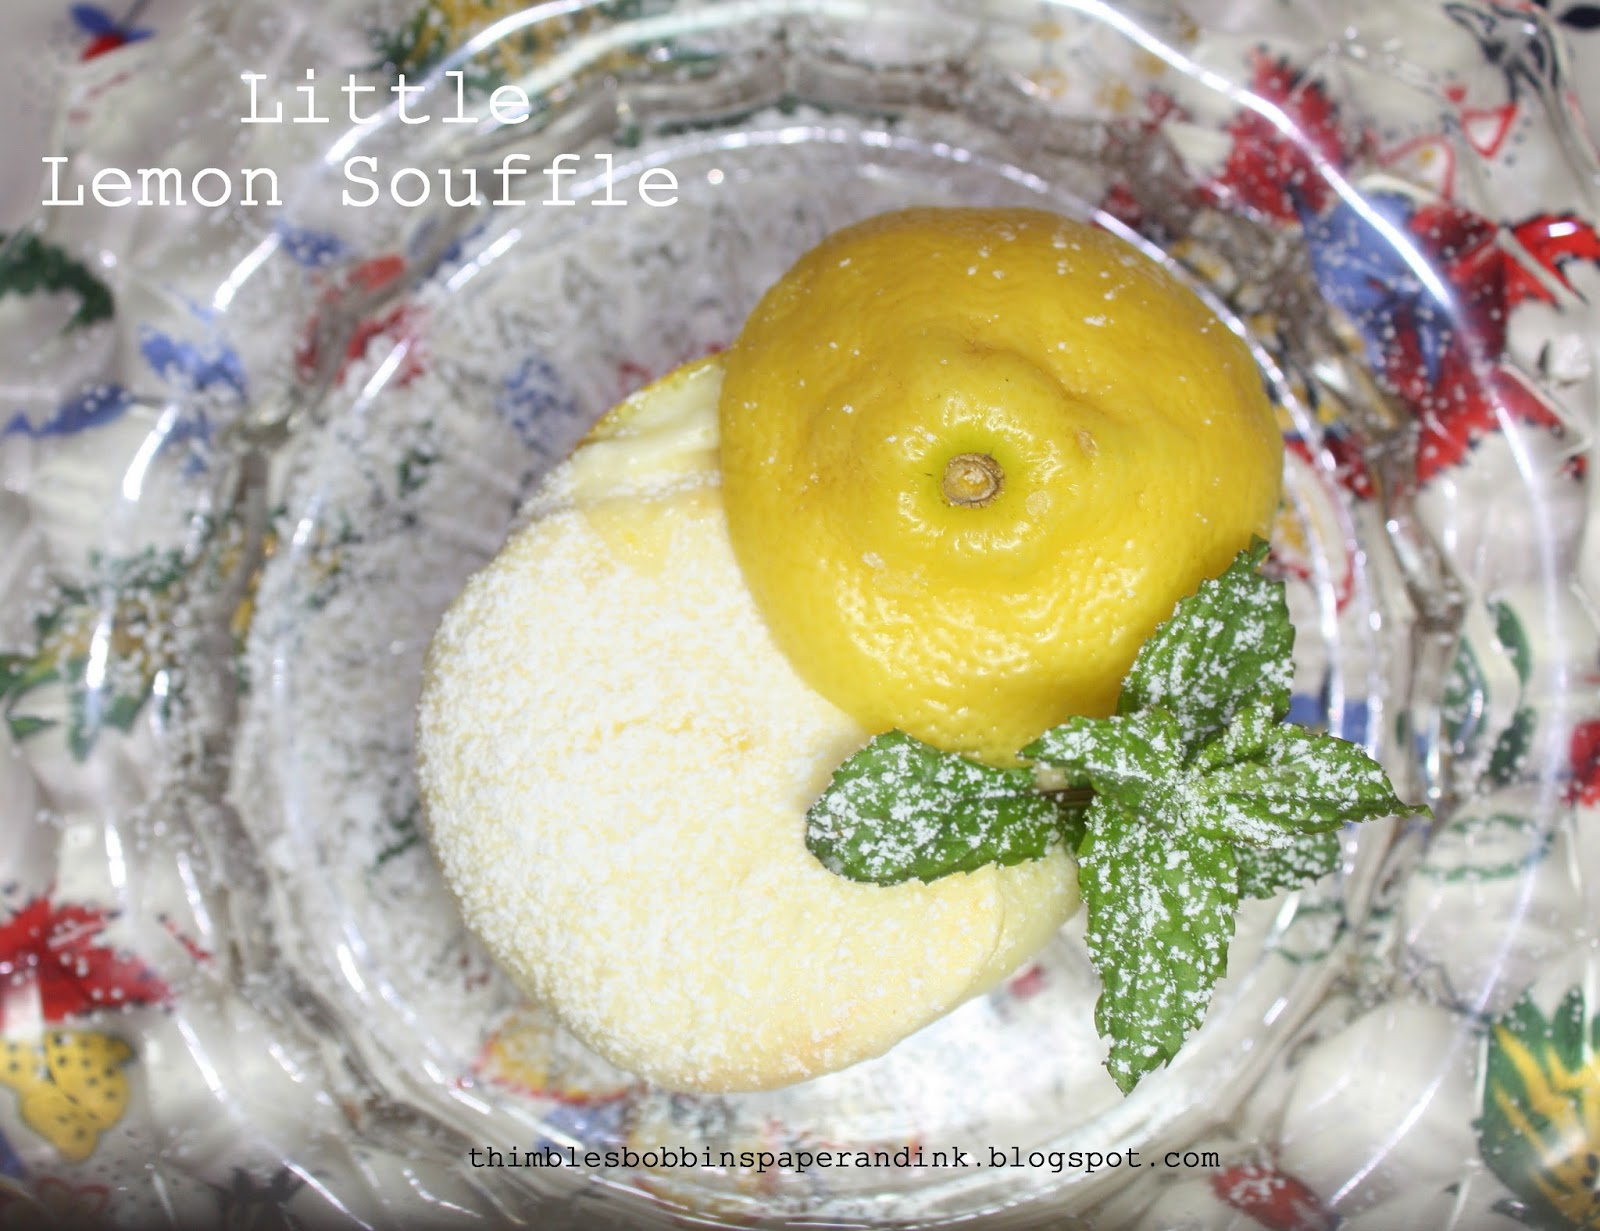 ... , Bobbins, Paper and Ink: Cake Dome Sunday #24: Little Lemon Souffle